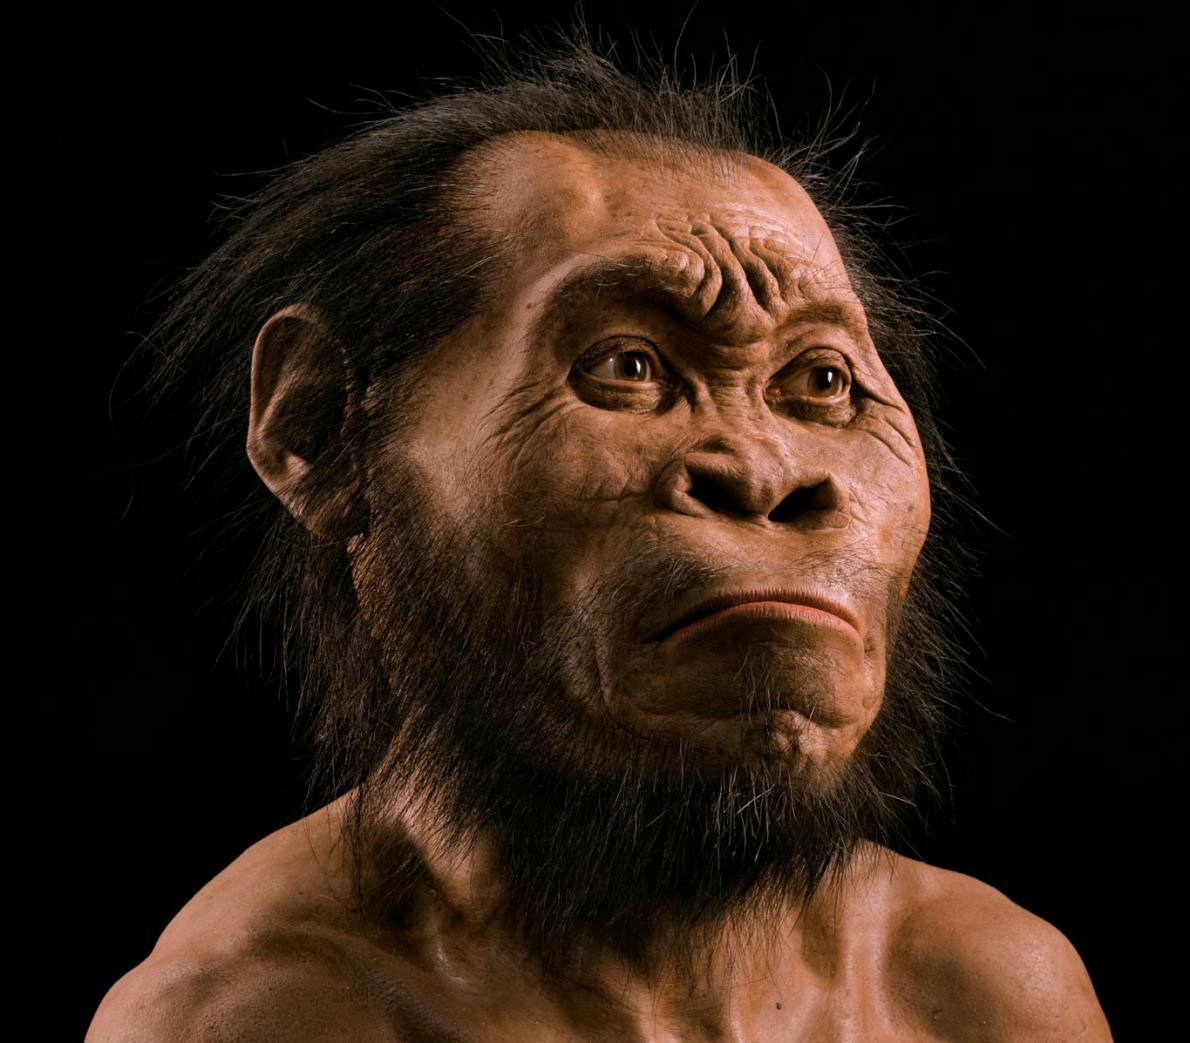 Homo naledi facial reconstruction